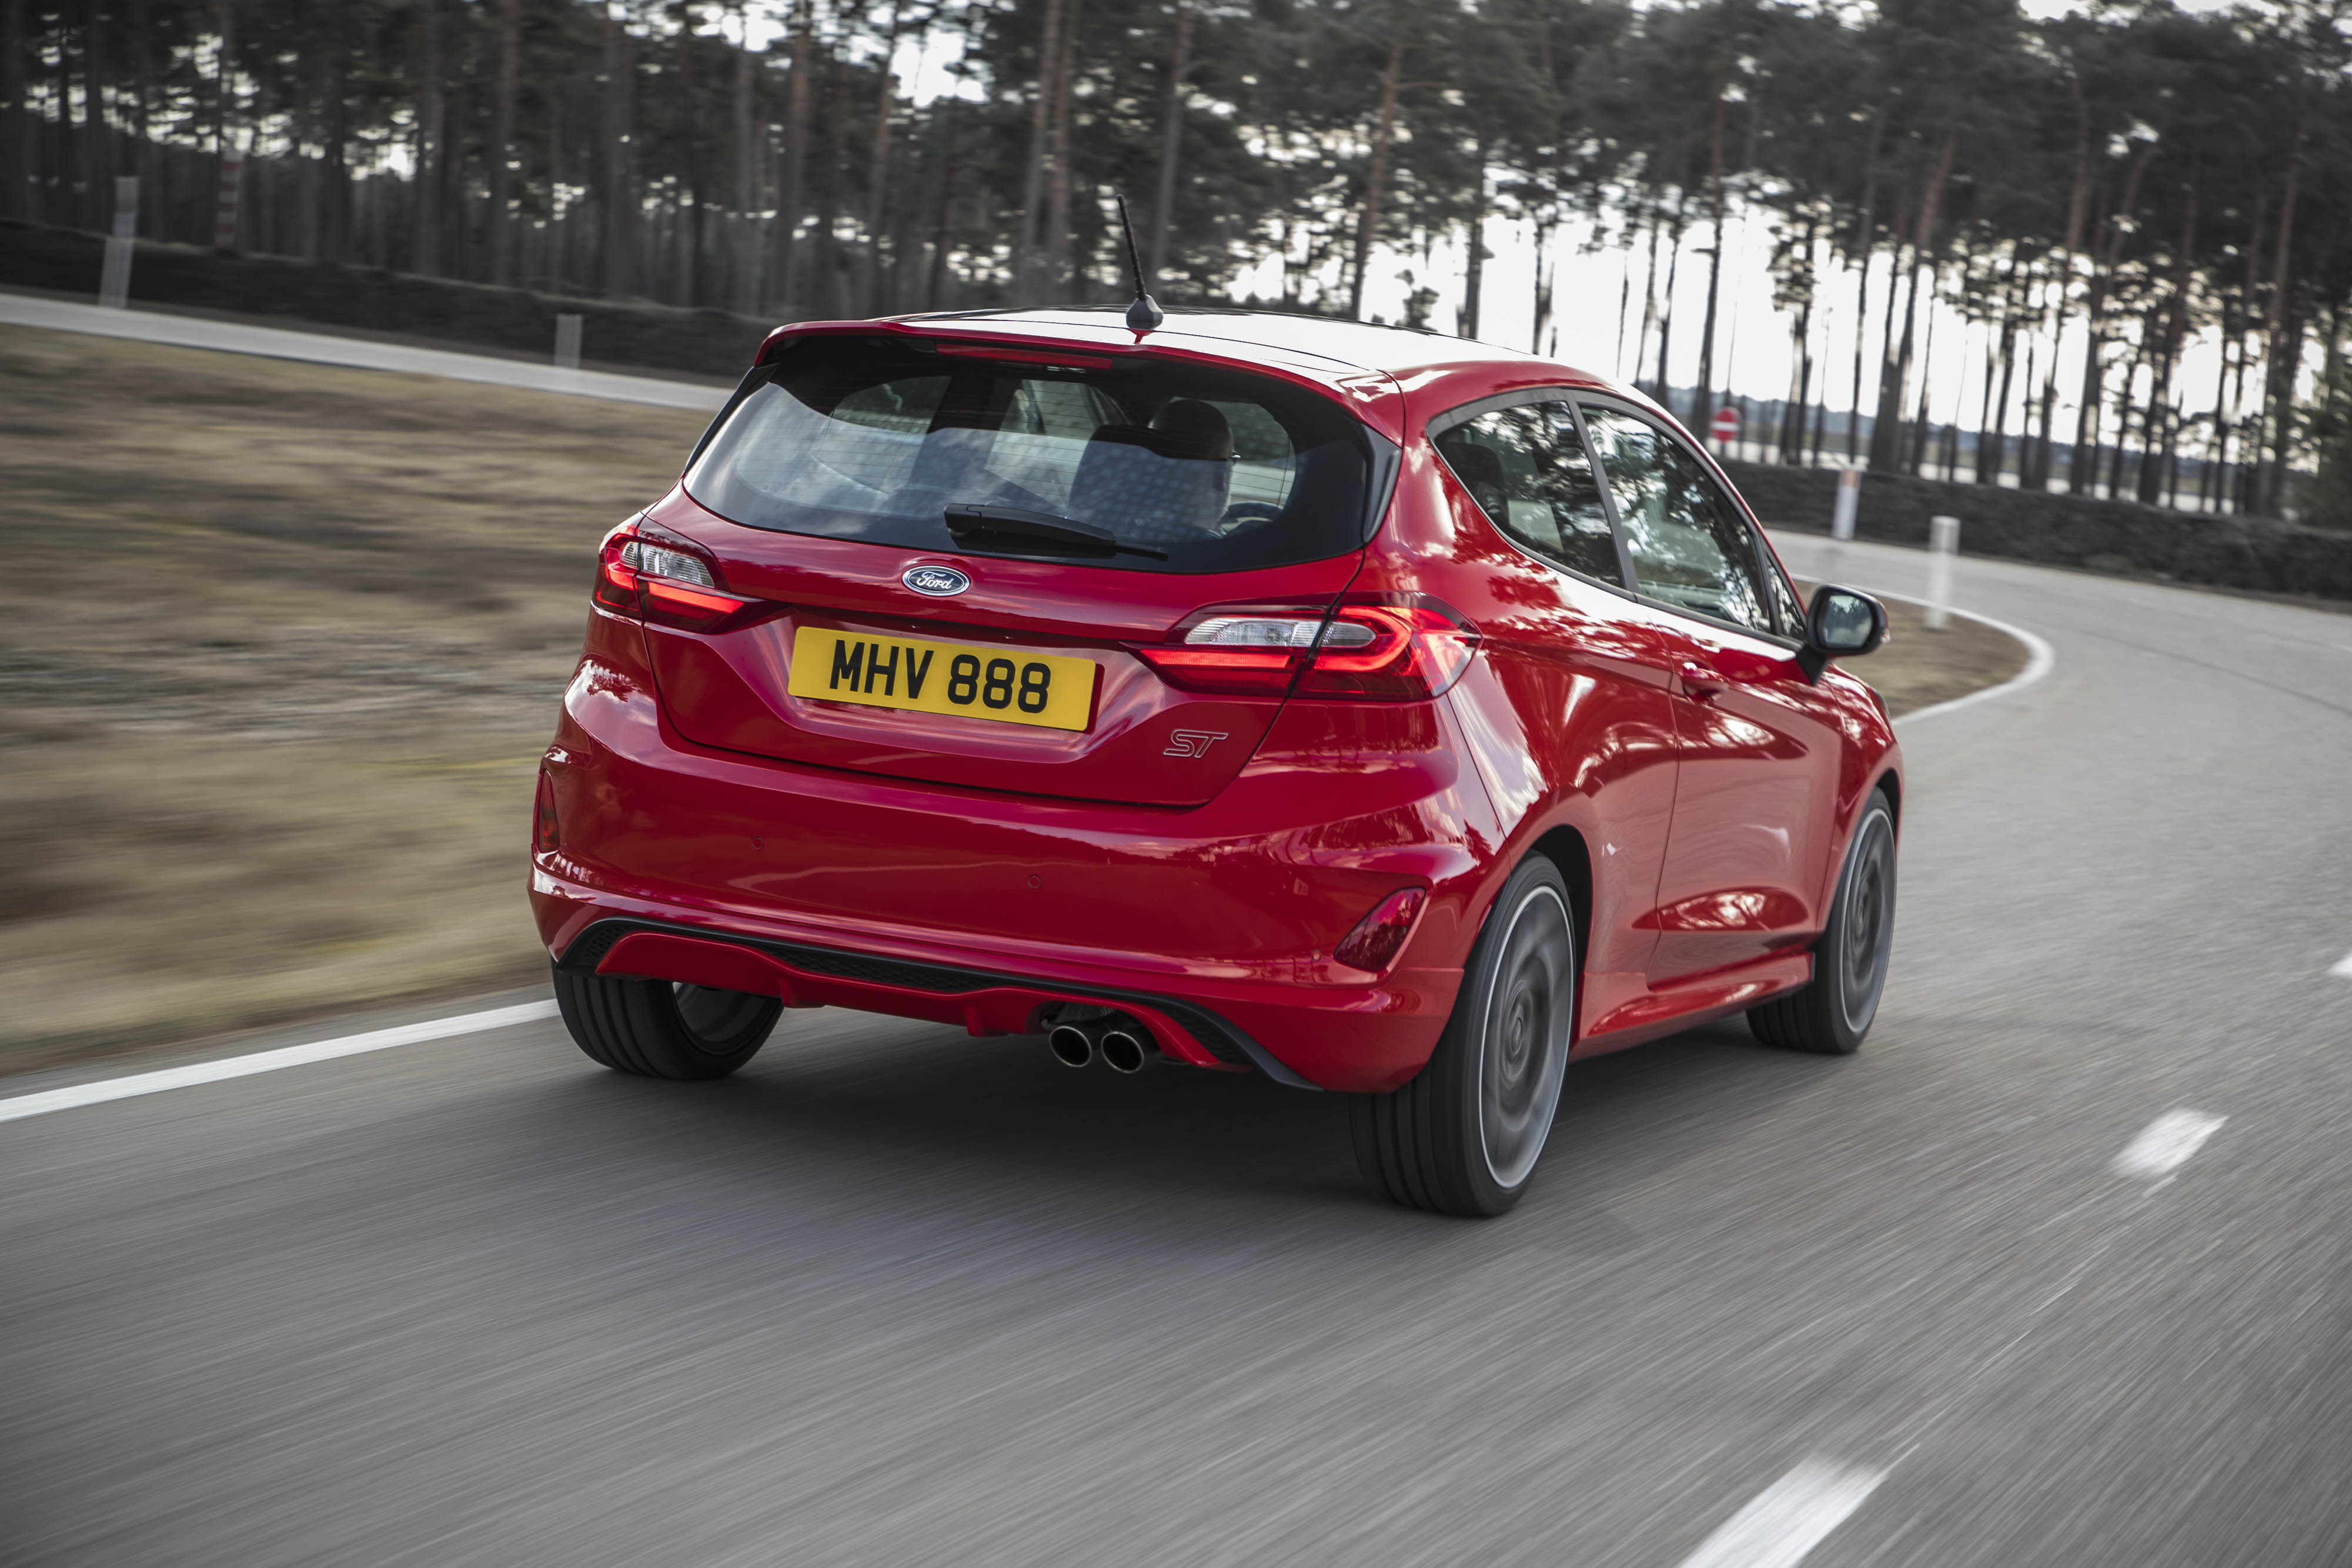 2018 Ford Fiesta St Price Announced Starts At Eur 22 100